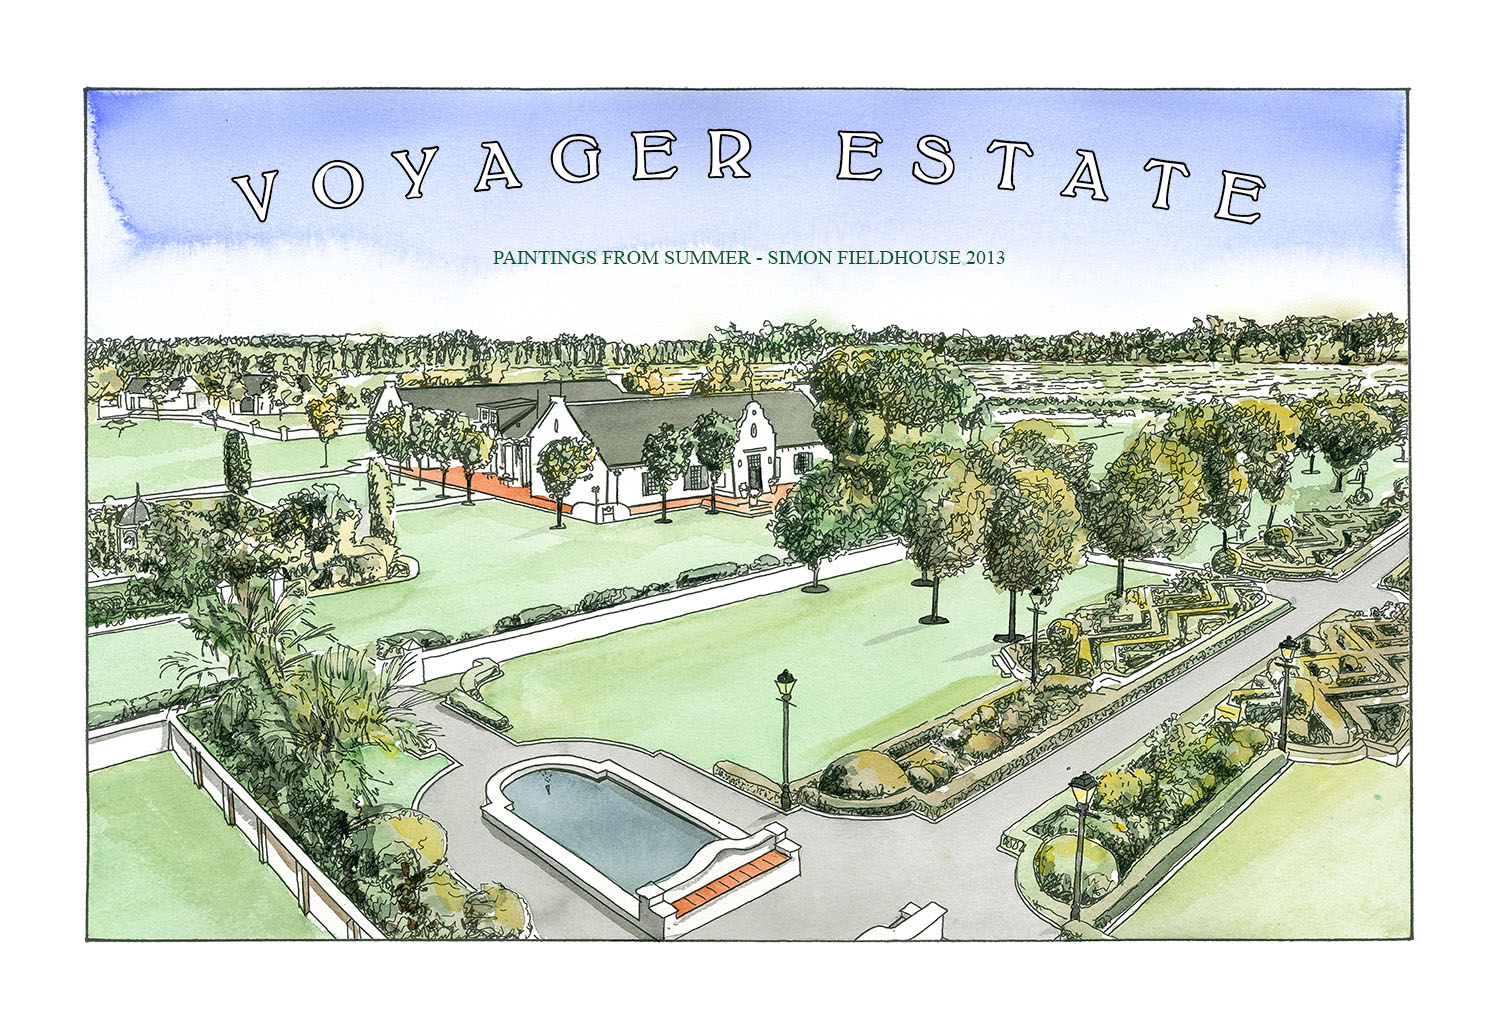 Voyager Estate Aerial View